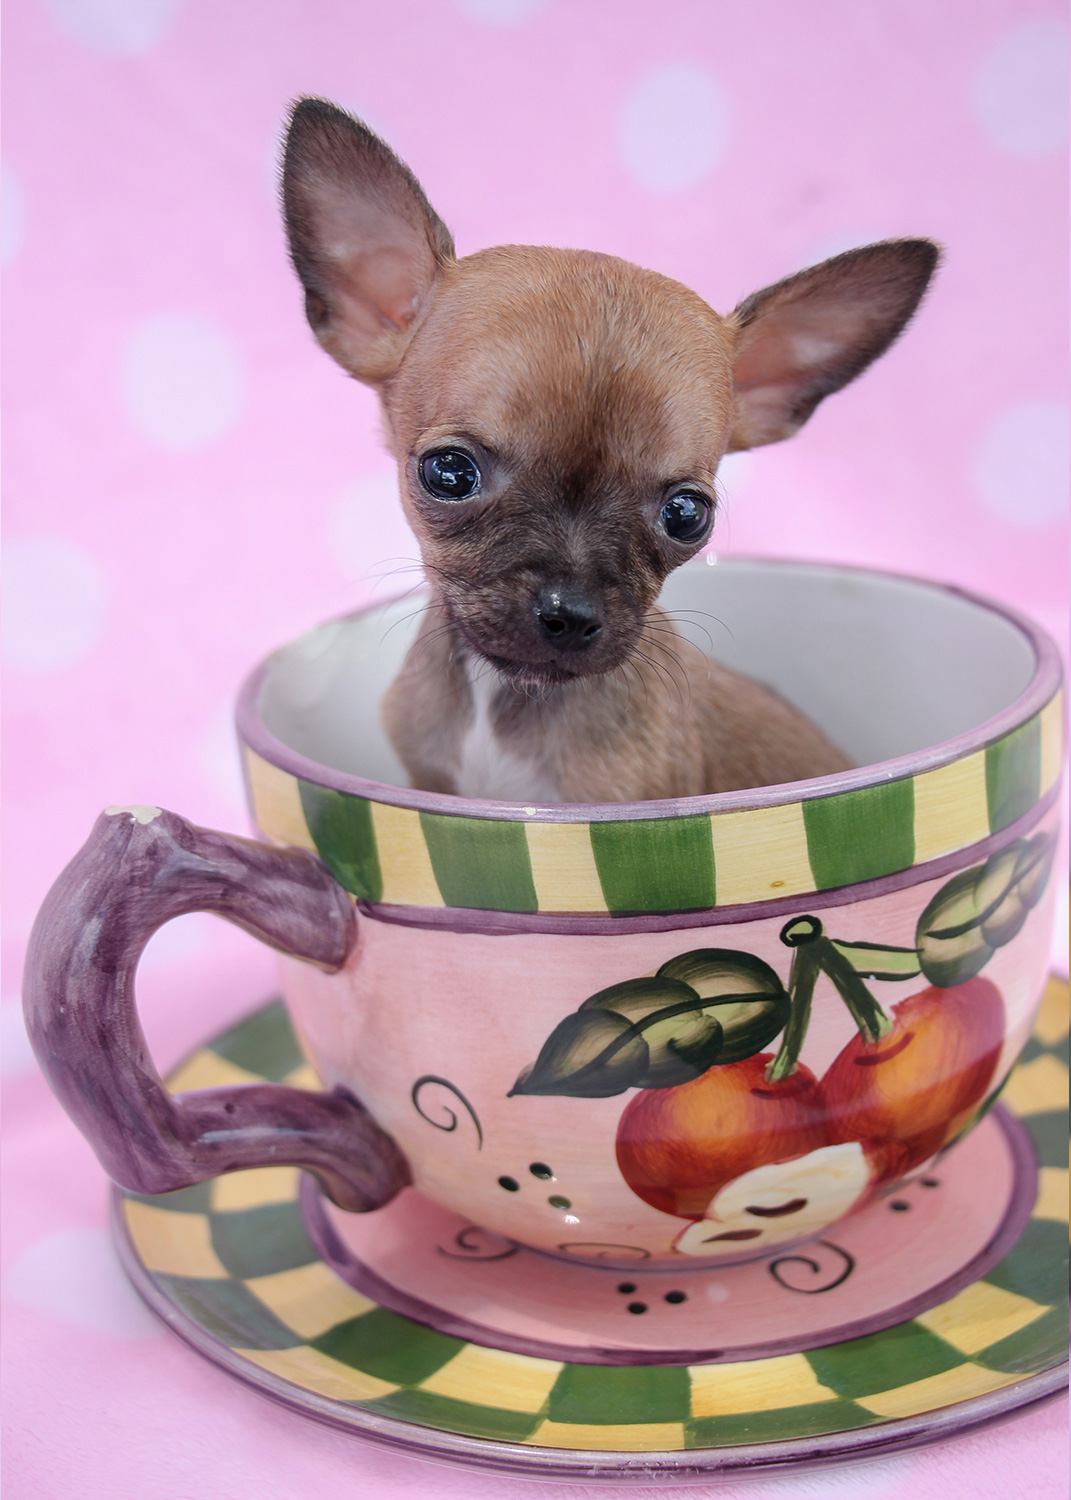 Teacup Chihuahua Puppies Available in South Florida ... | 1071 x 1500 jpeg 365kB